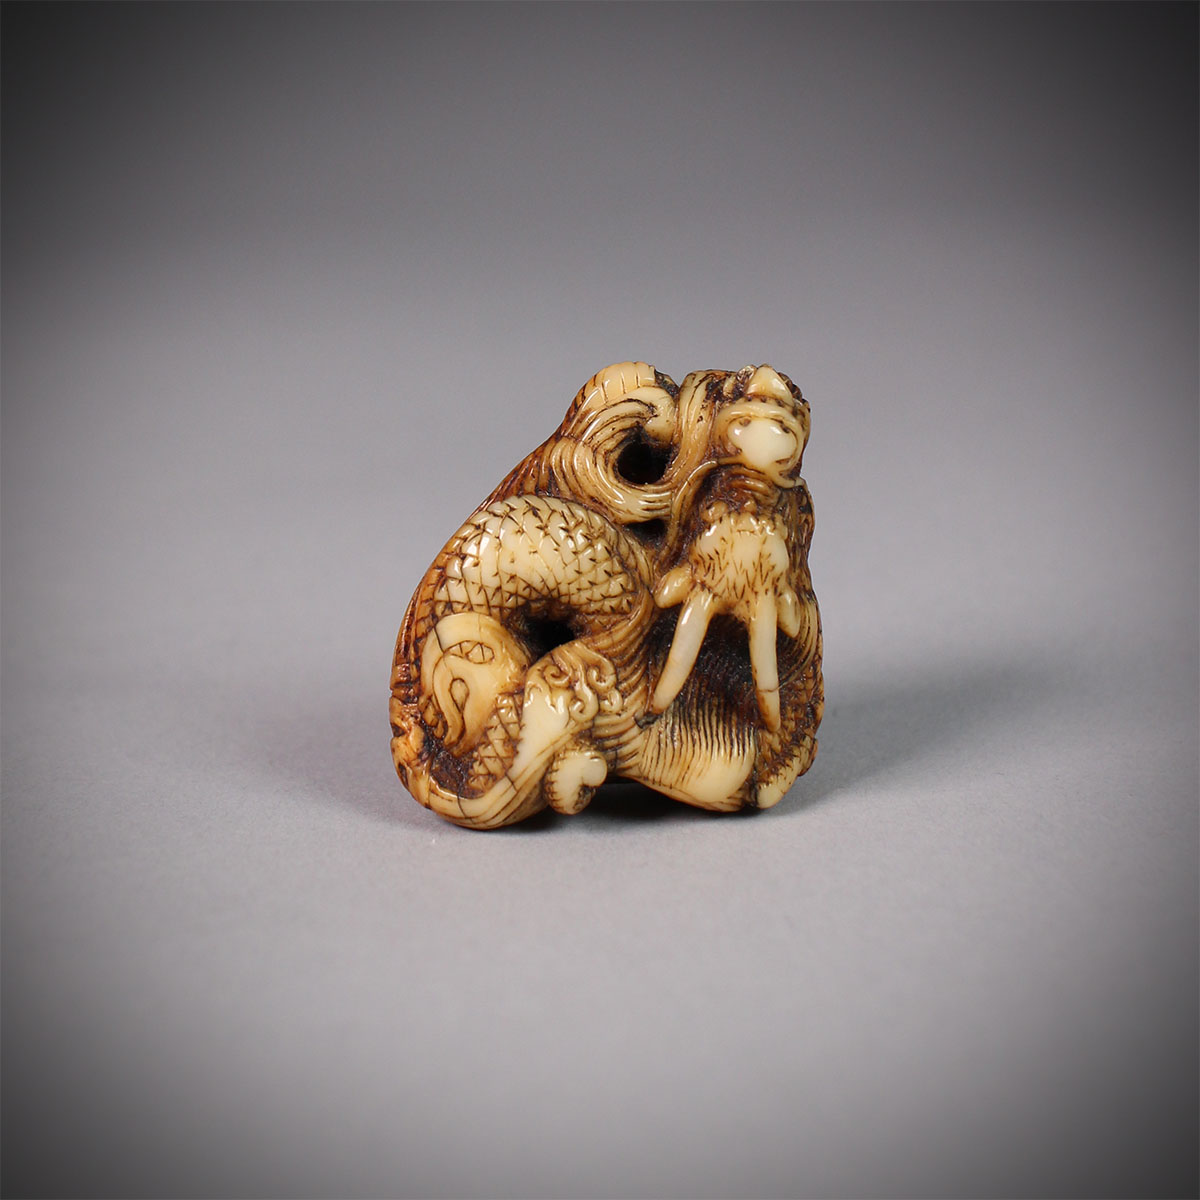 Narwhal ivory netsuke of a dragon, MR3144